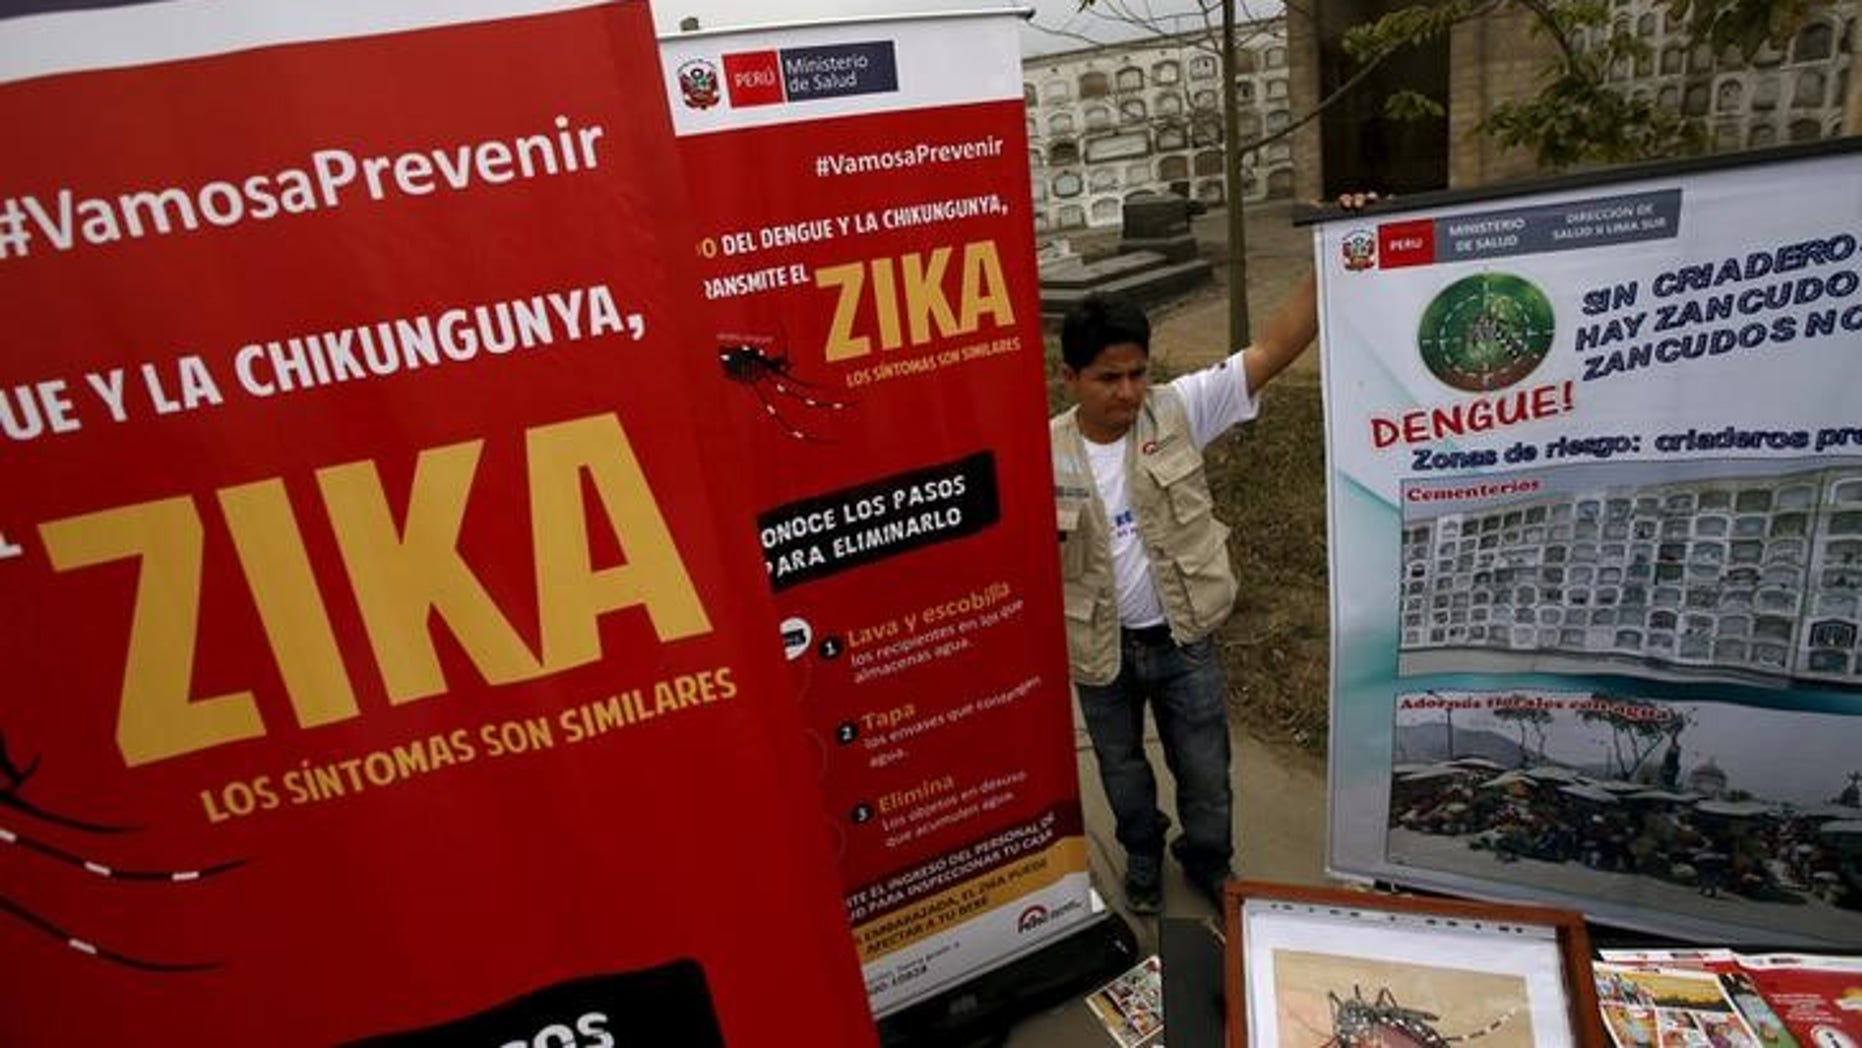 A health worker gives information during a preventive campaign against the Zika virus and other mosquito-borne diseases, at the cemetery of Presbitero Maestro in Lima